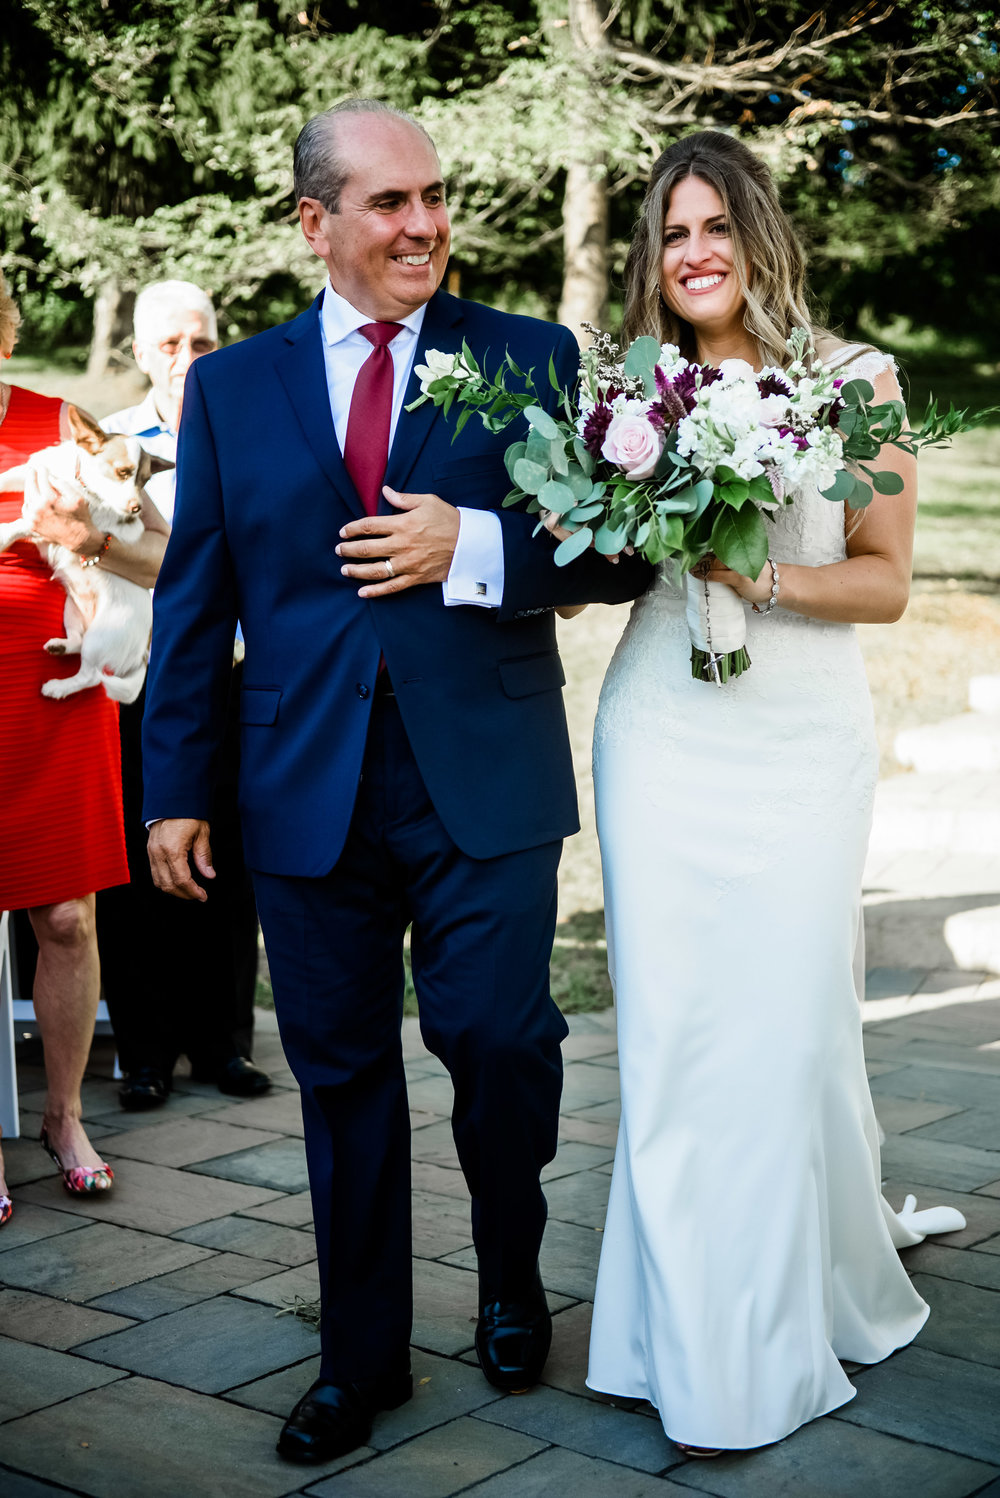 Bride's father escorts bride down the aisle at wedding ceremony for Pittsburgh wedding planned by Exhale Events. Find more wedding inspiration at exhale-events.com!